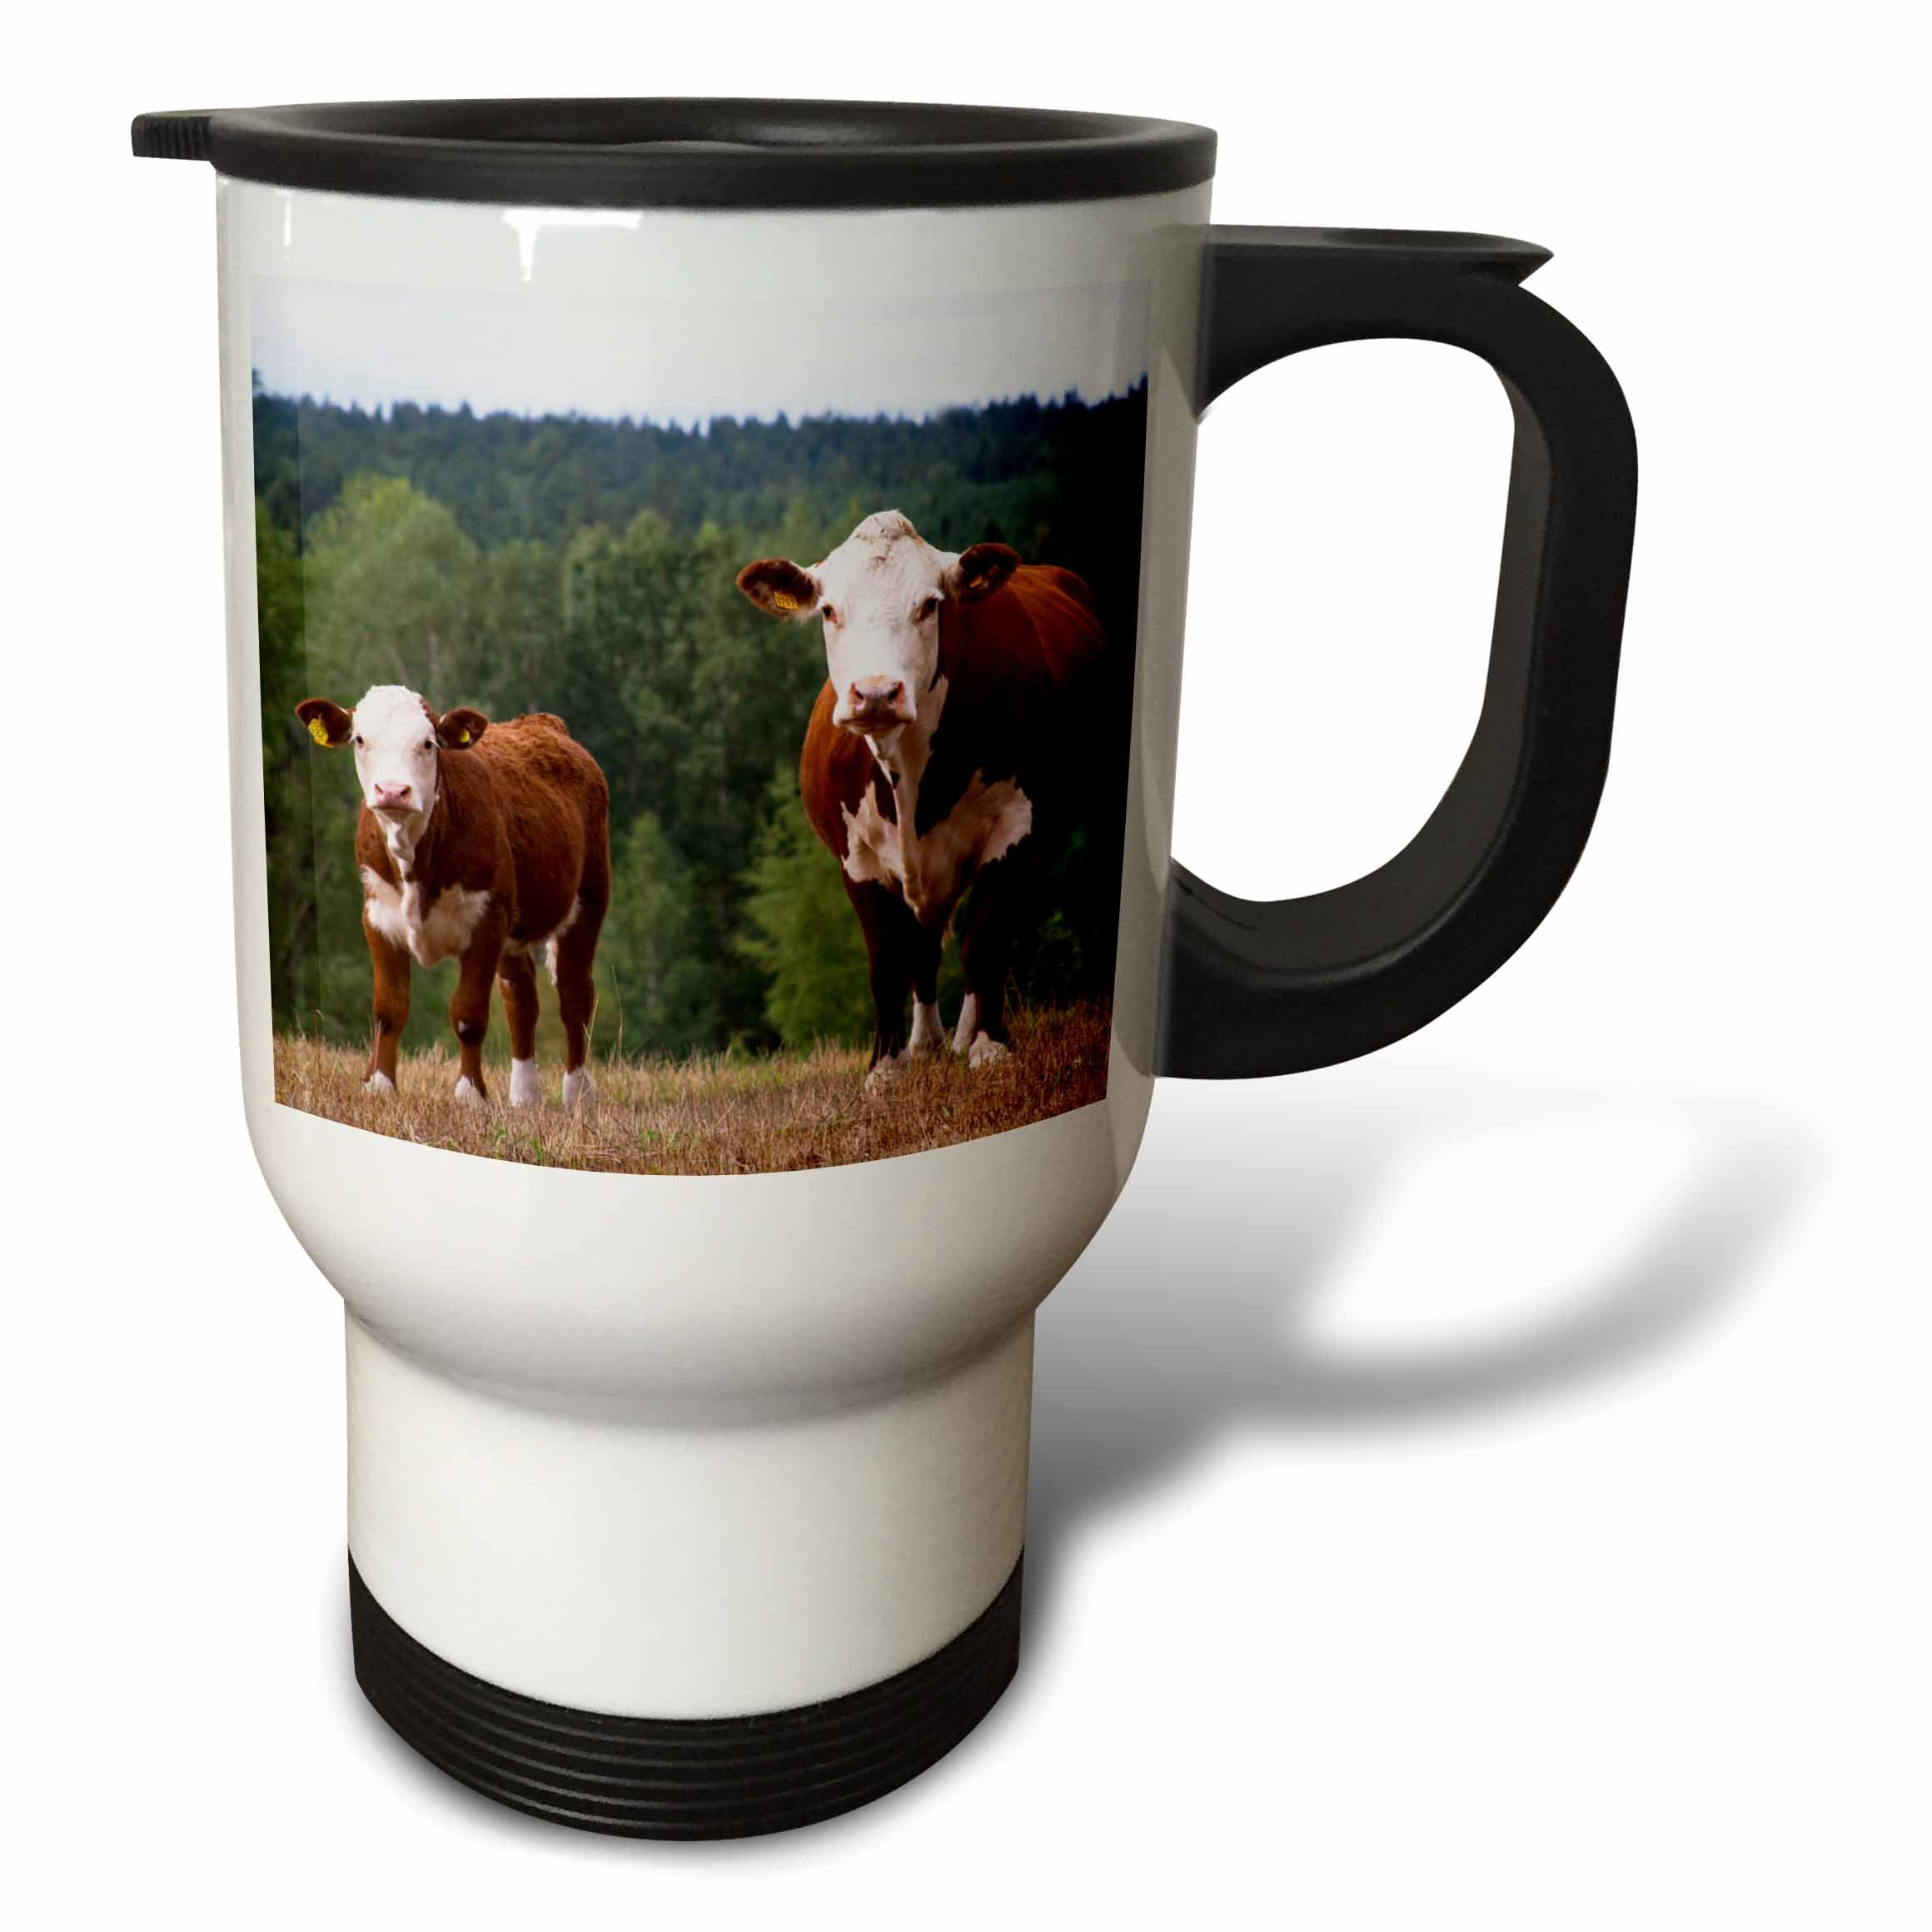 3dRose tm_82607_1'' Calf Cow Brown and White Smaland, Sweden-EU28 PKA0117-Per Karlsson Stainless Steel'' Travel Mug, 14 oz, Multicolor by 3dRose